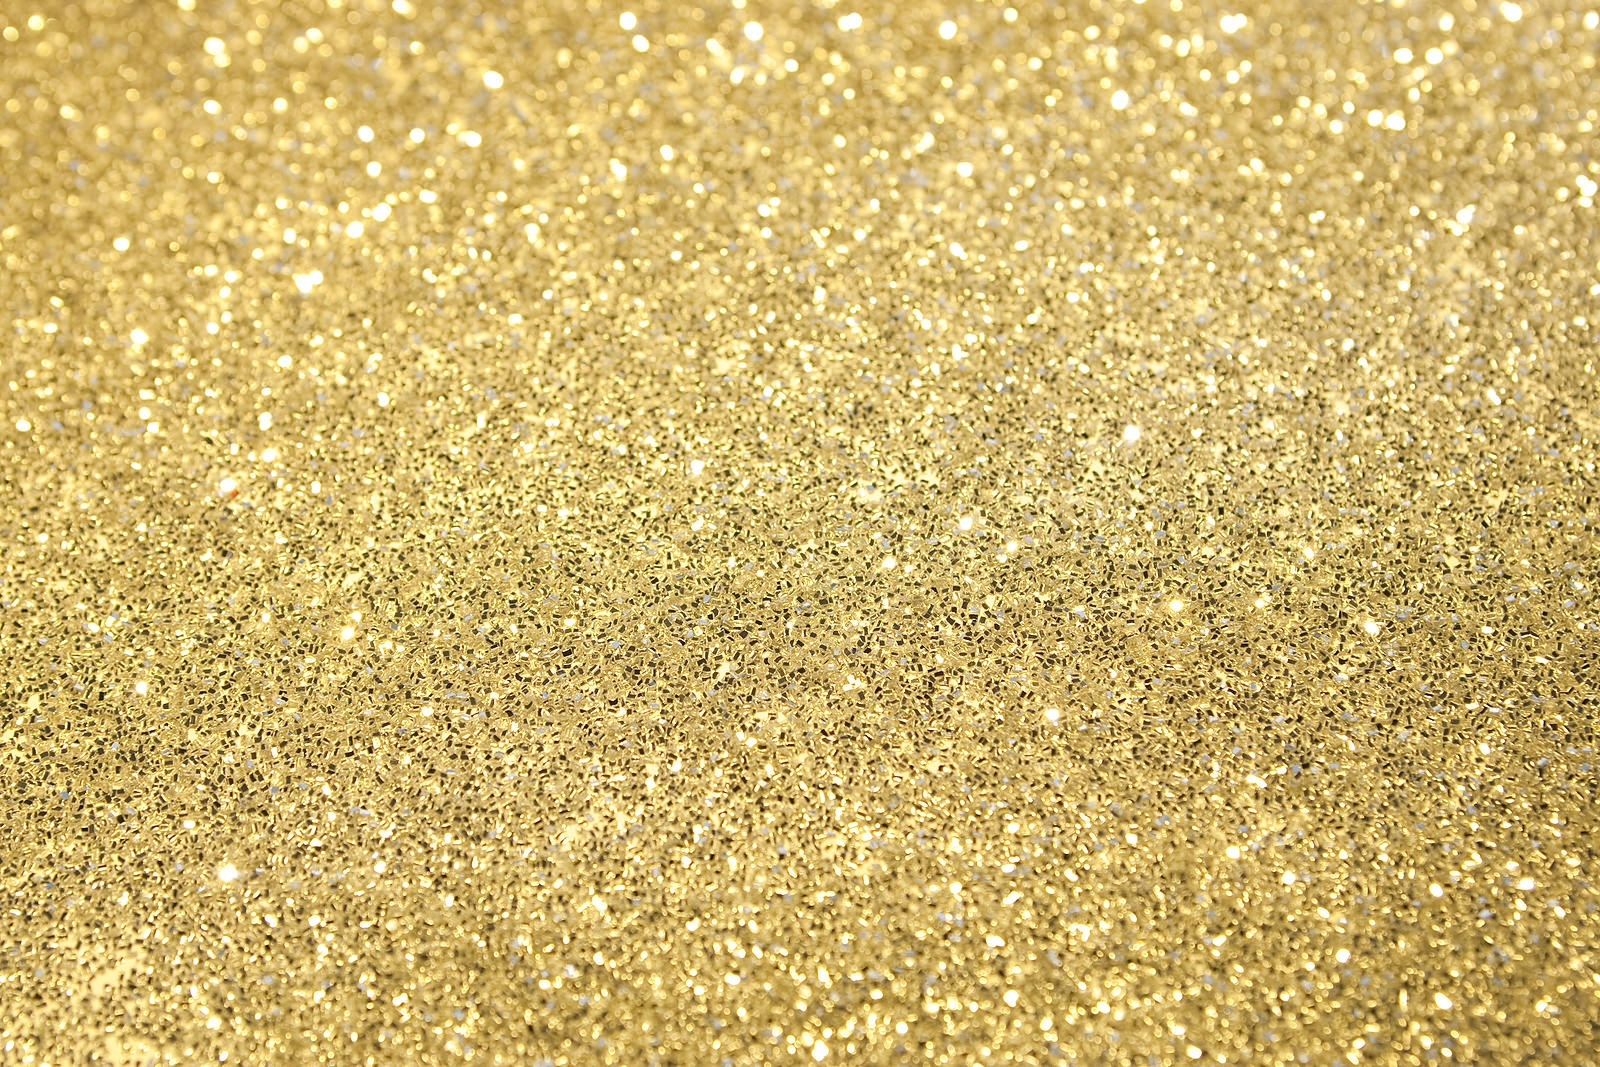 Glitter Tumblr Backgrounds | FreeCreatives